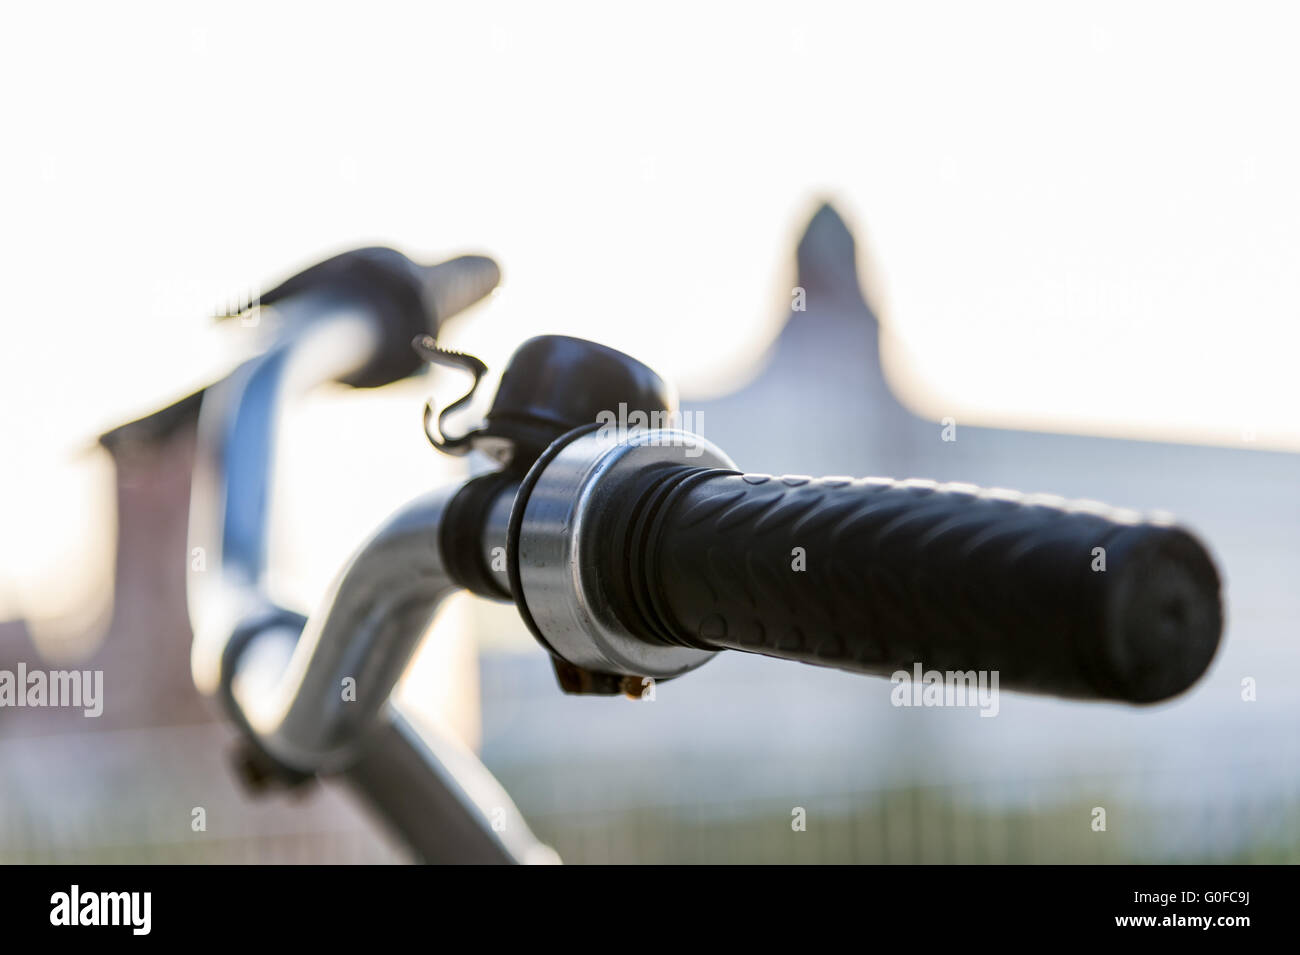 Bicycle handlebars with ringing in the diffuse backlight. - Stock Image